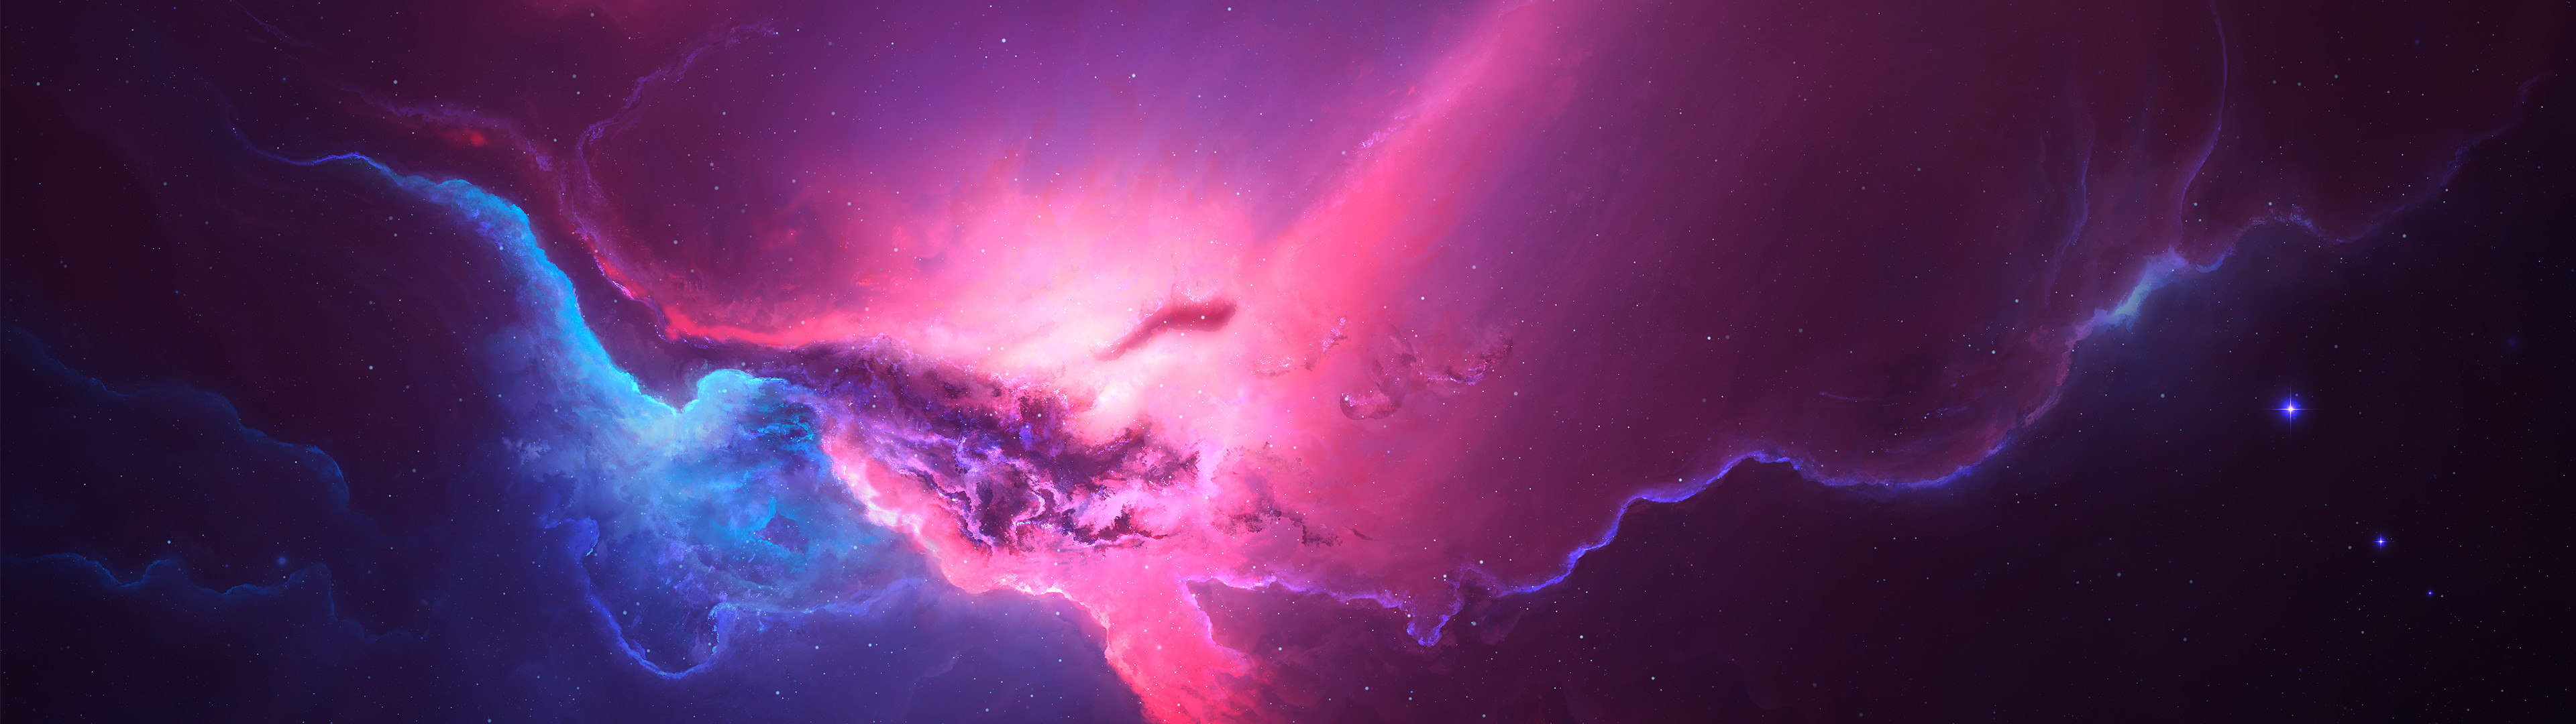 3840x1080 Wallpaper Space (74+ images)